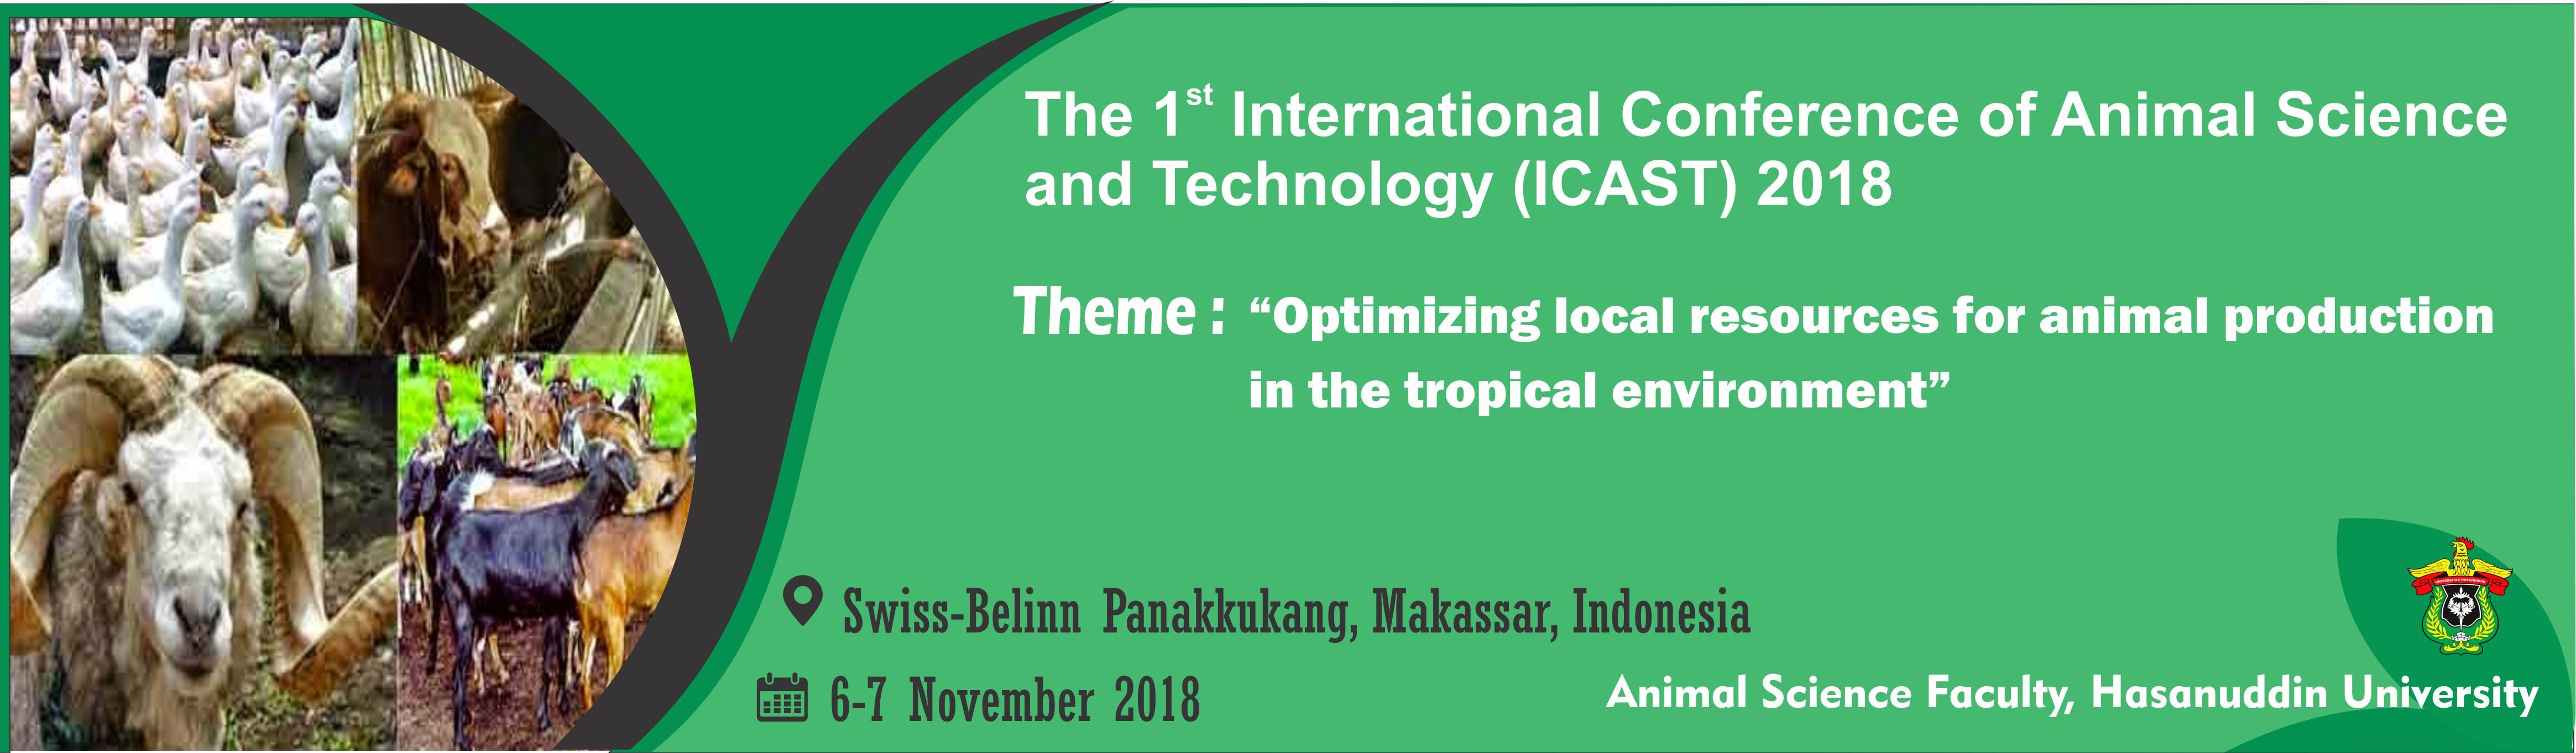 The 1st International Conference of Animal Science and Technology (ICAST) 2018